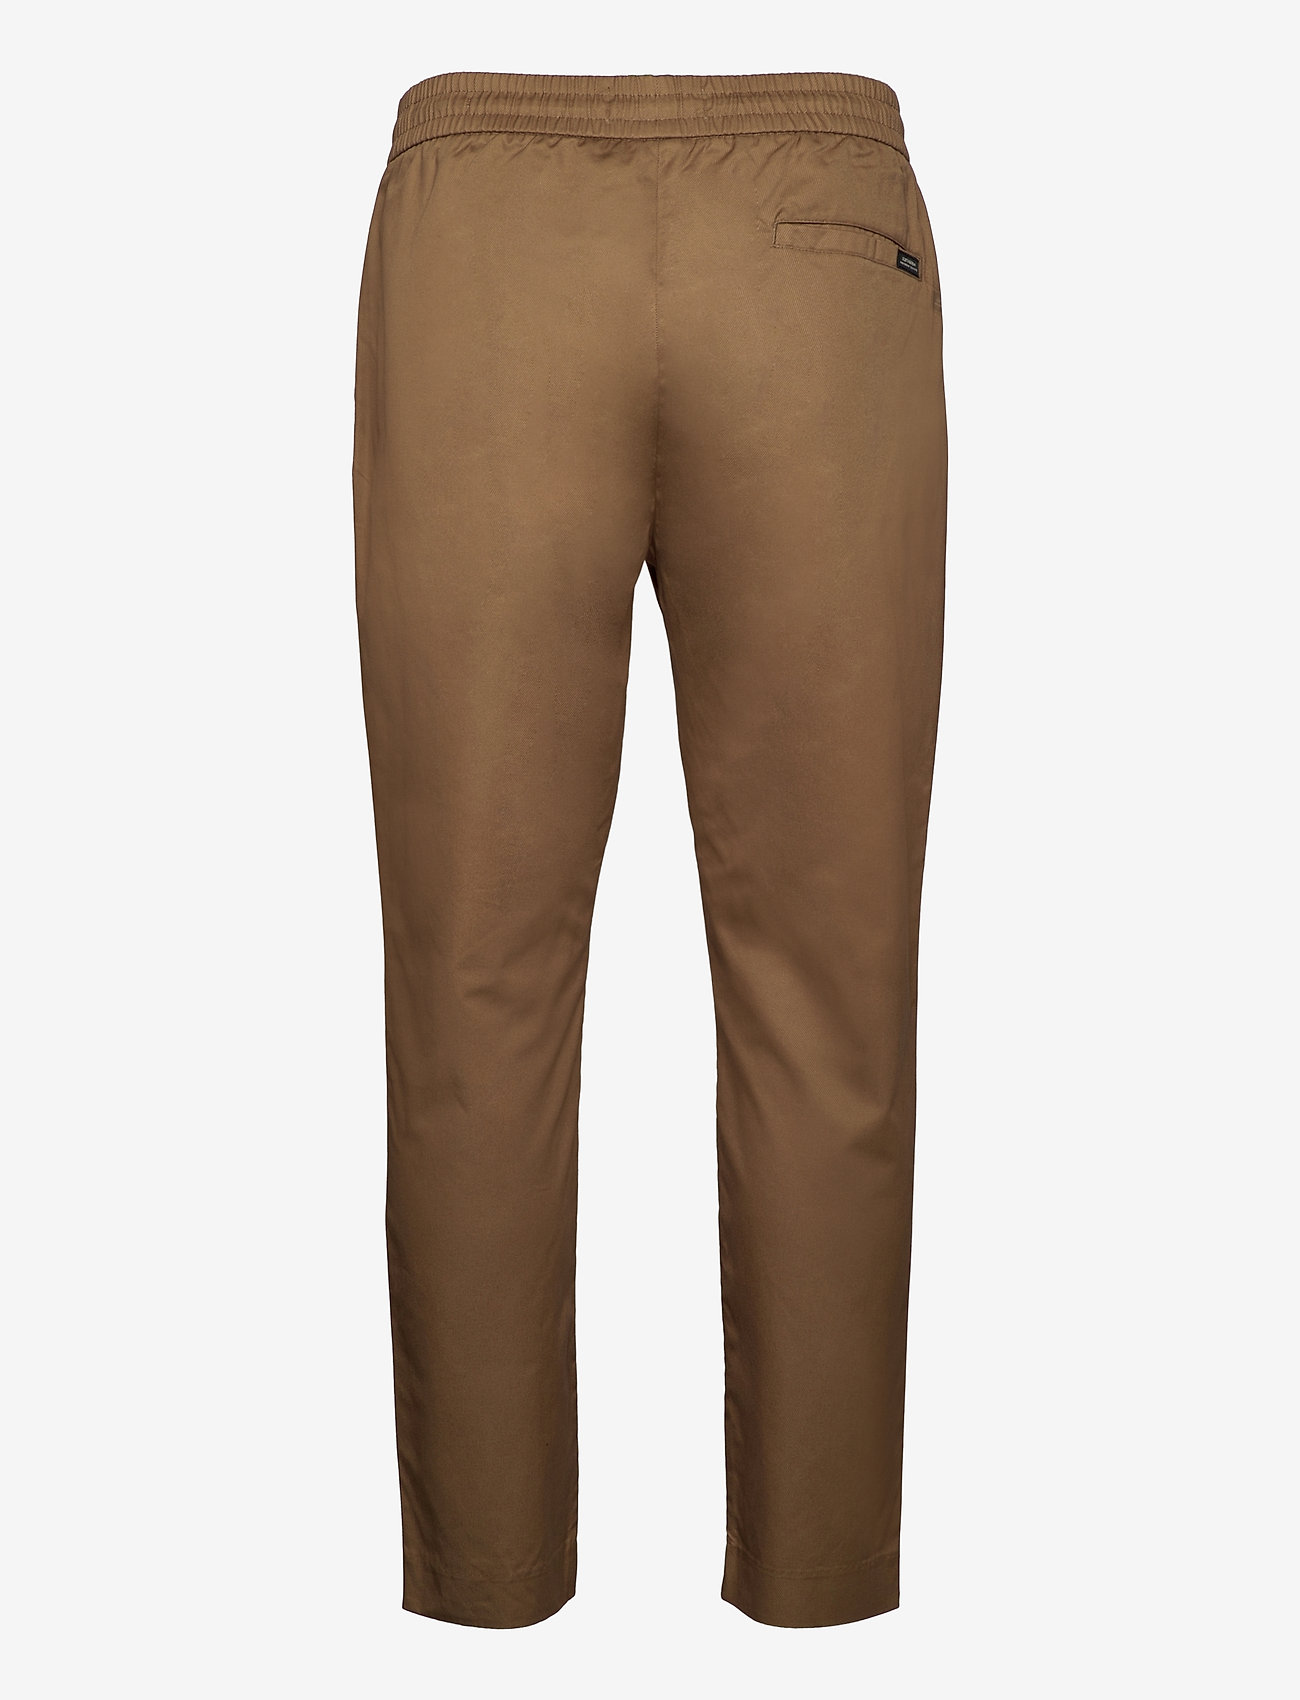 Scotch & Soda - FAVE- Lightweight chino in jogger styling in organic cotton - chino's - sand - 1